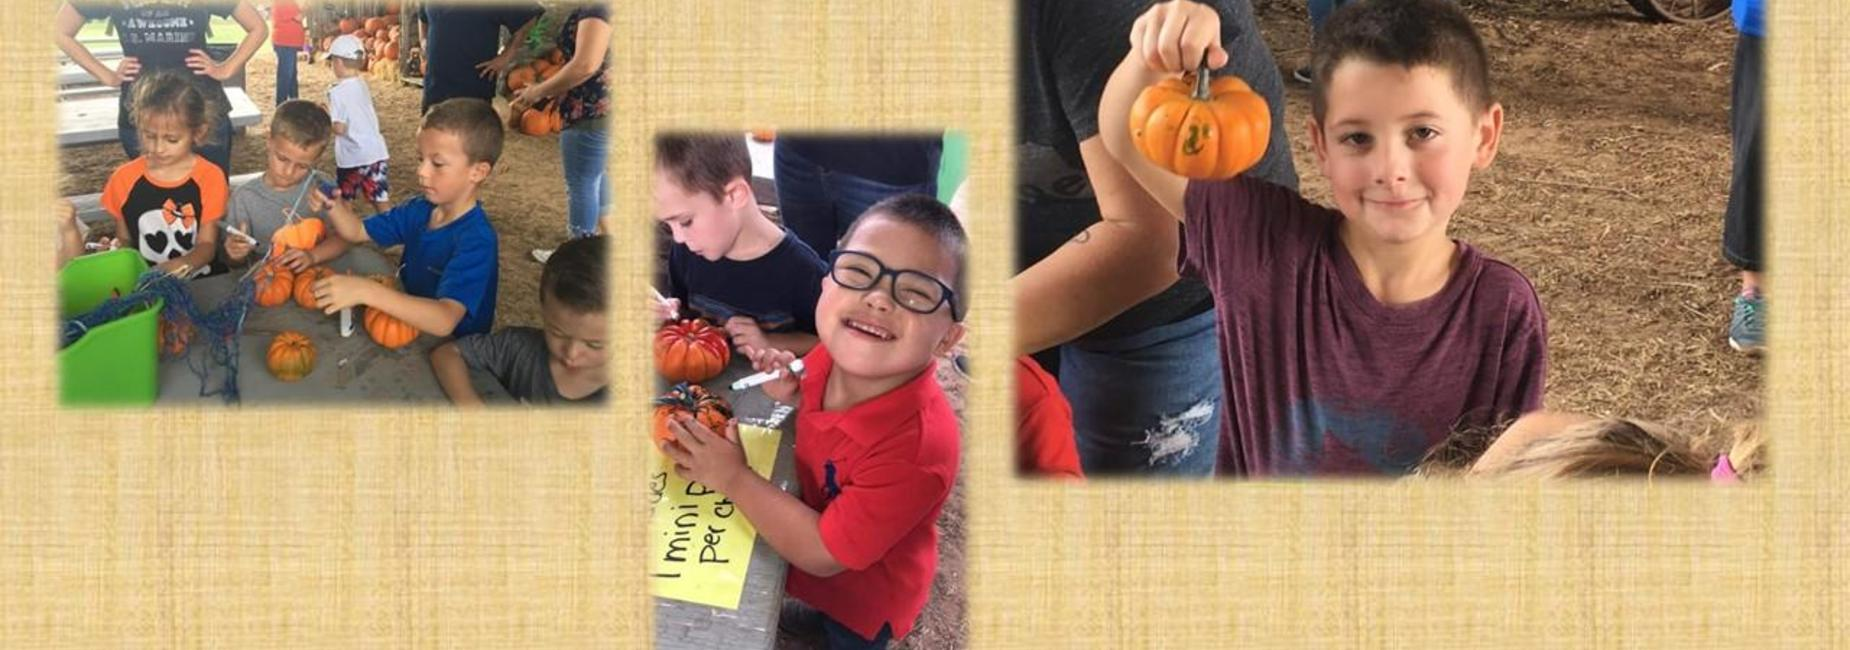 Kinder at the Pumpkin Patch 3 pics